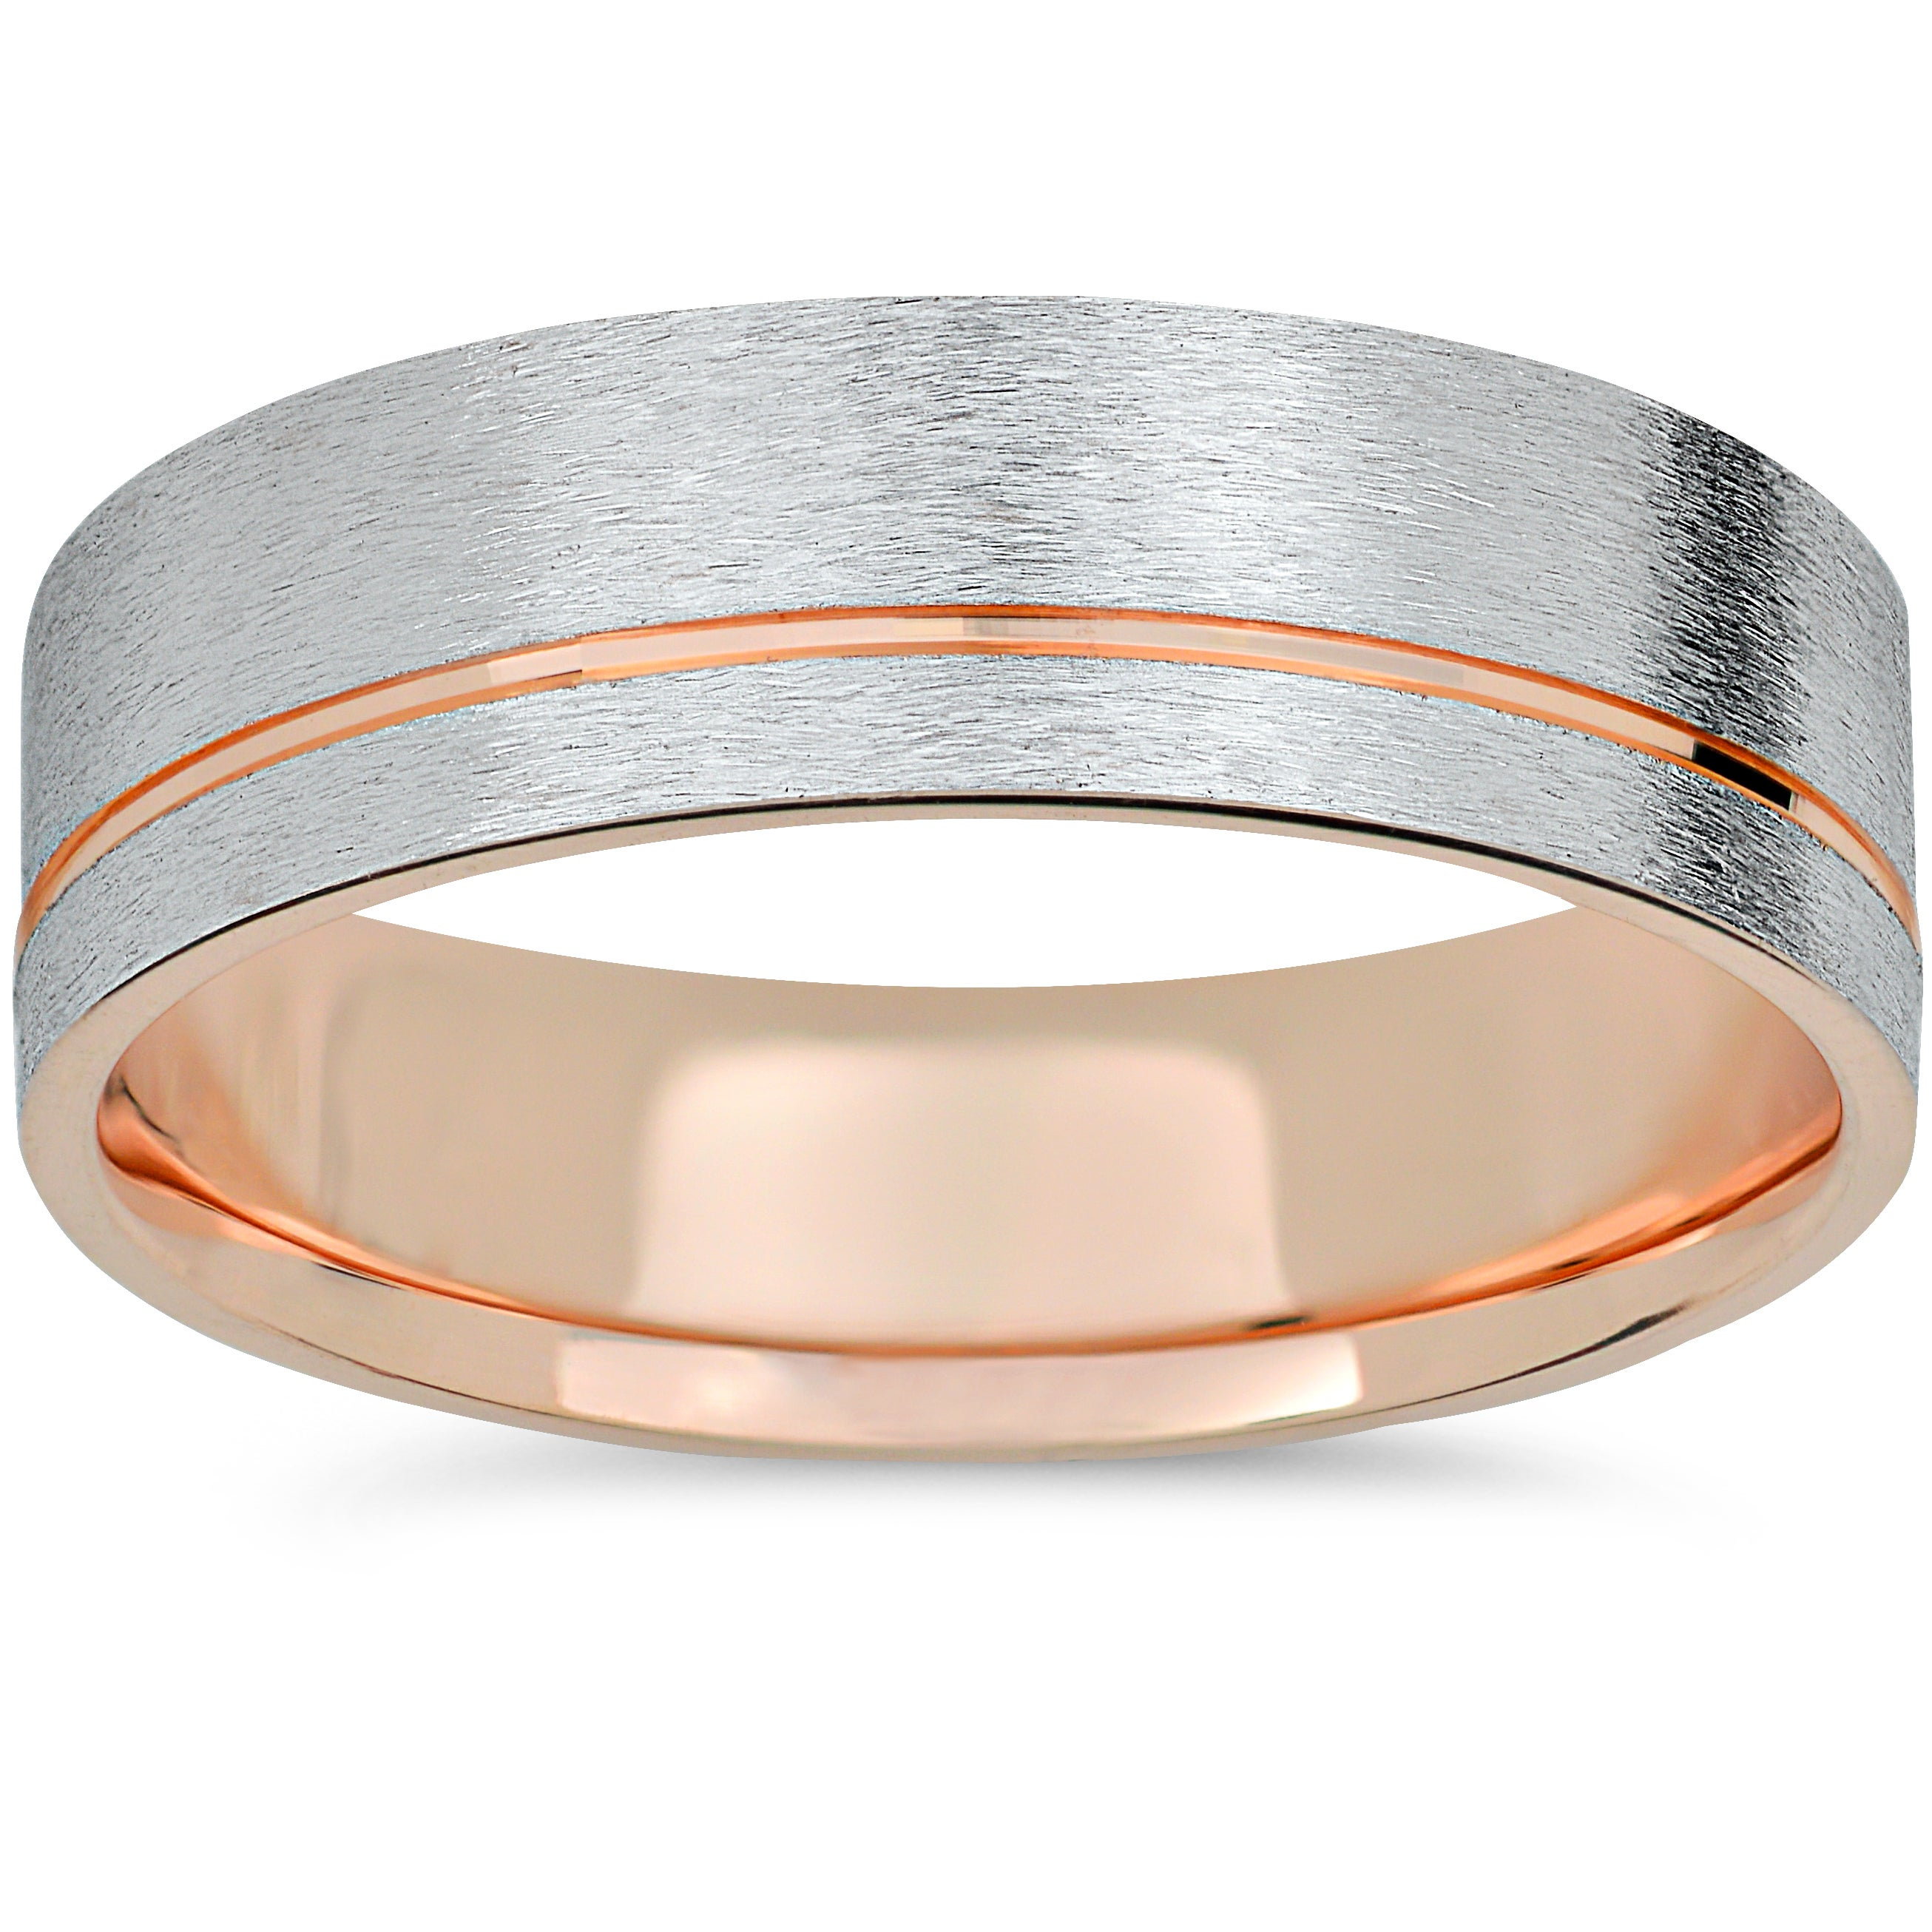 It is a photo of 40k Rose Gold & White Gold Two Tone 40mm Brushed Mens Wedding Band